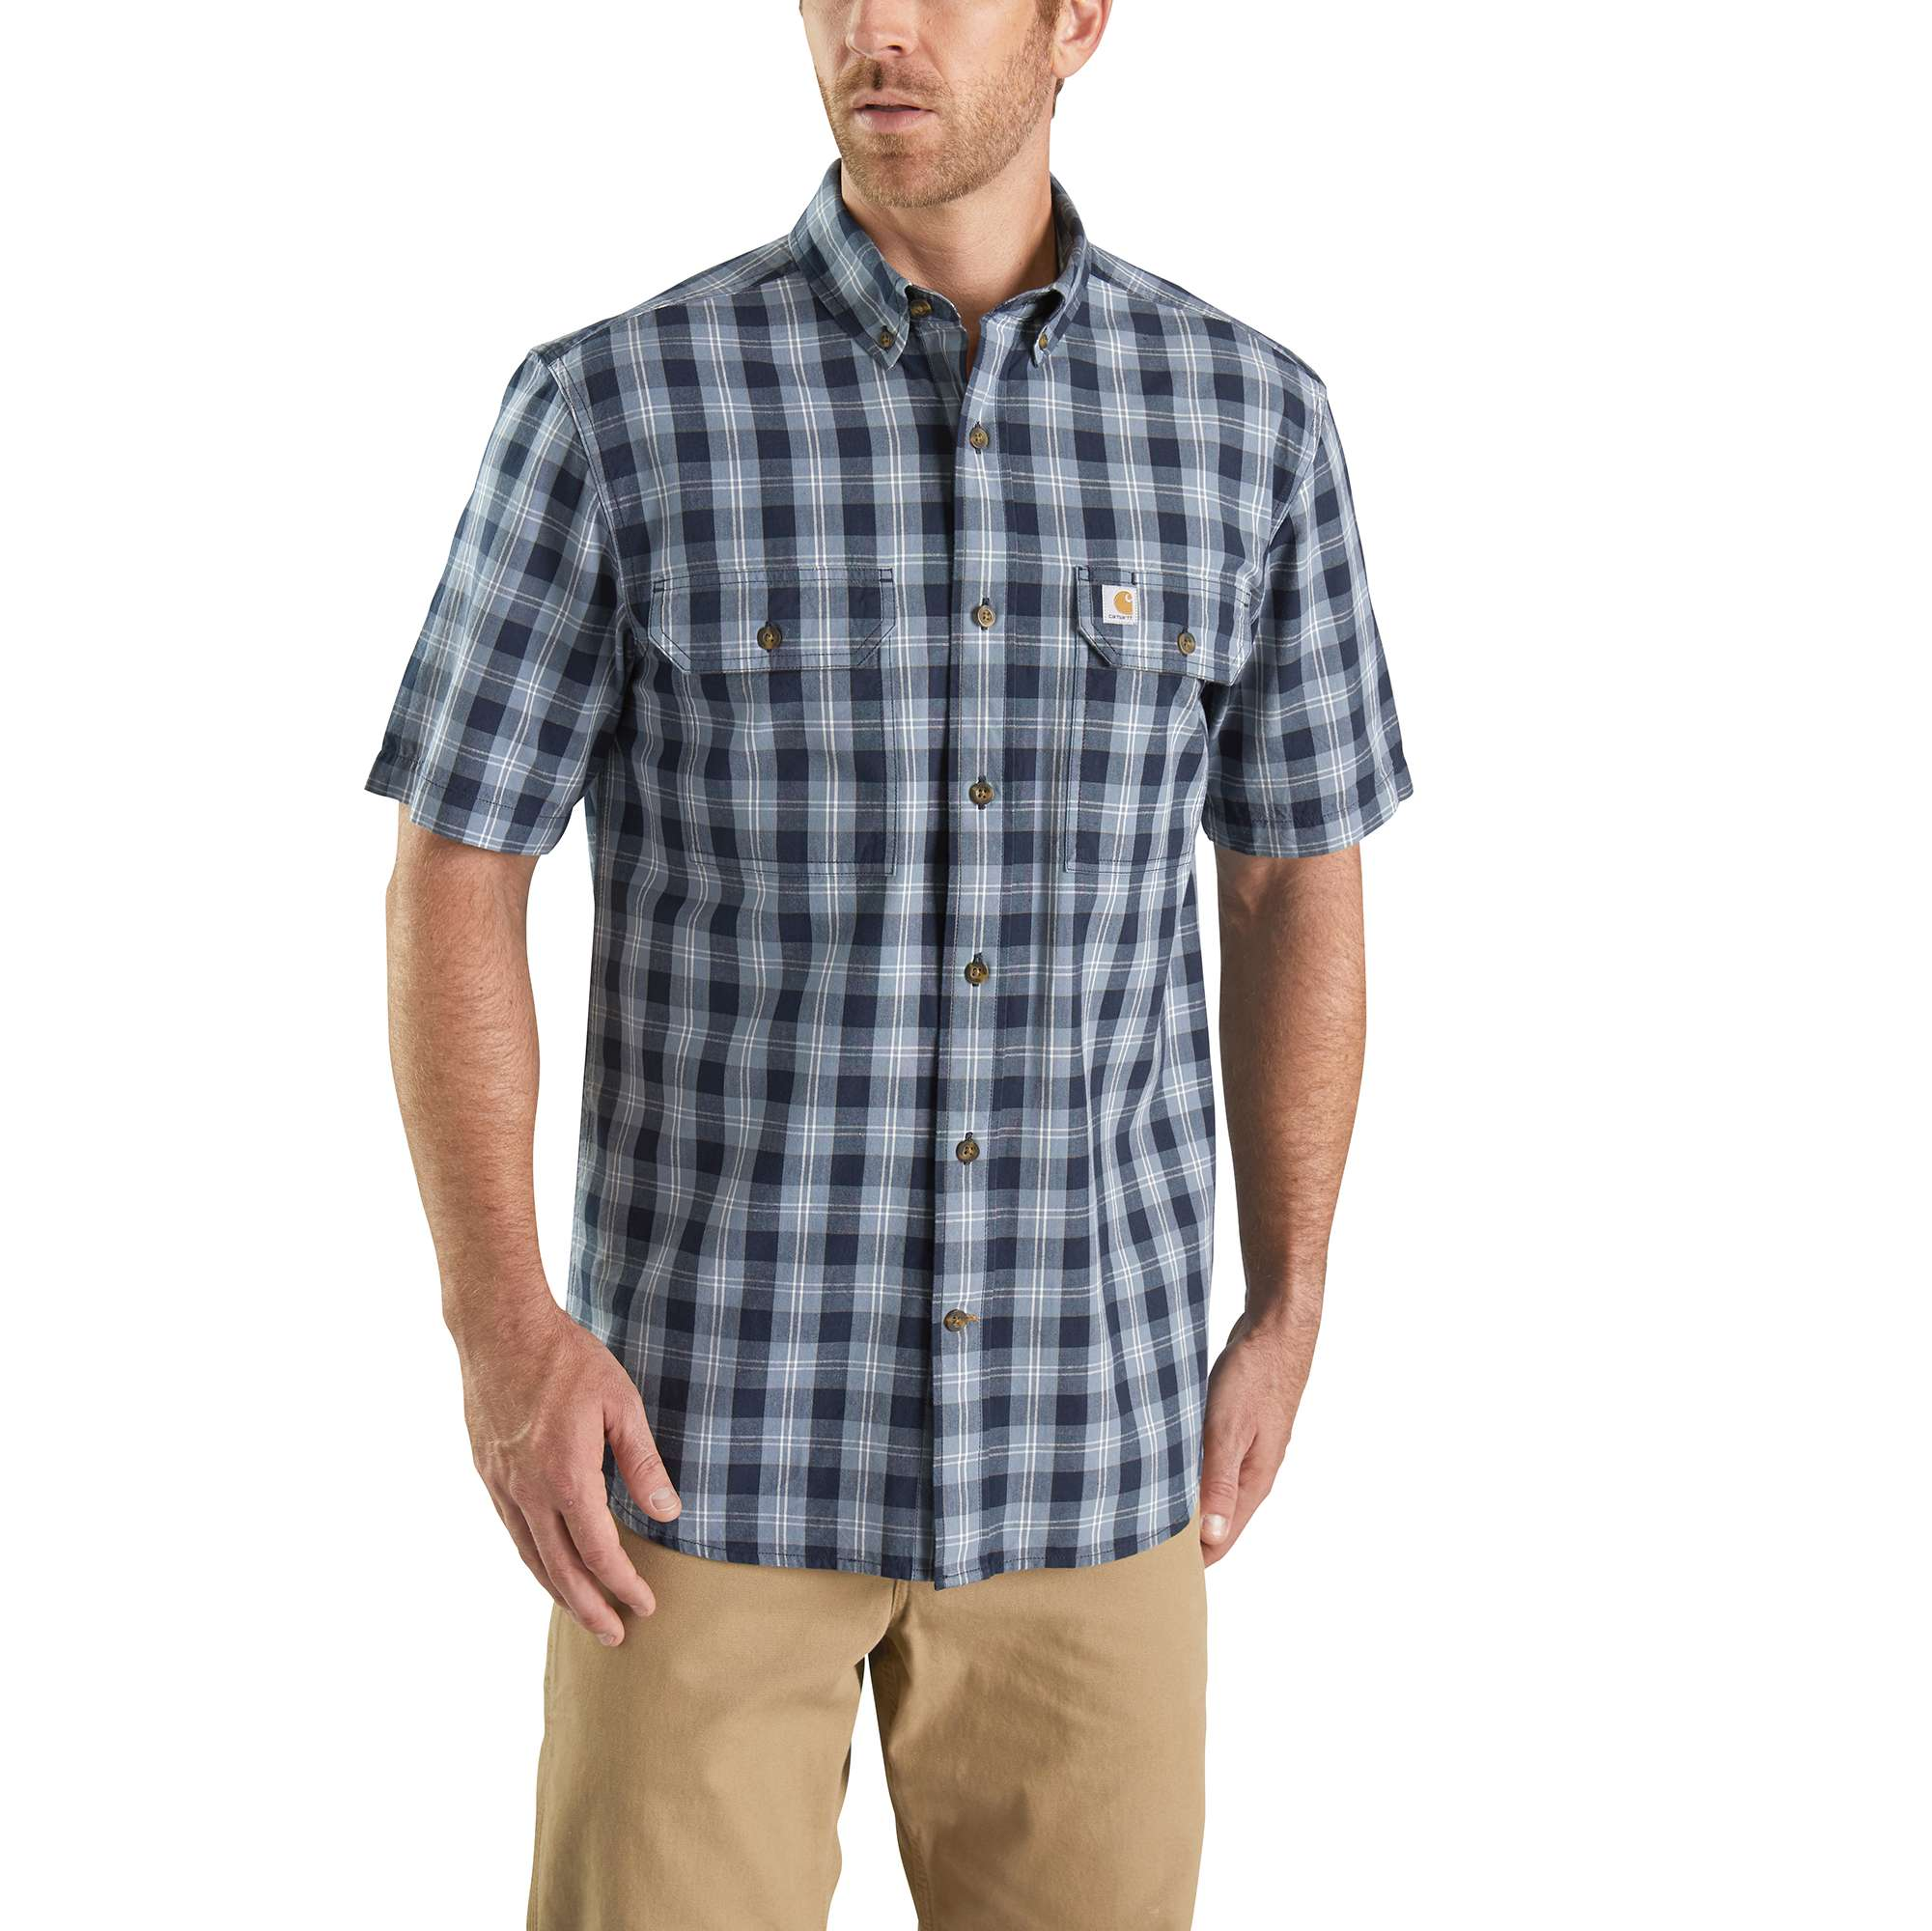 Men's Fort Plaid Chambray Short Sleeve Shirt, Navy, swatch